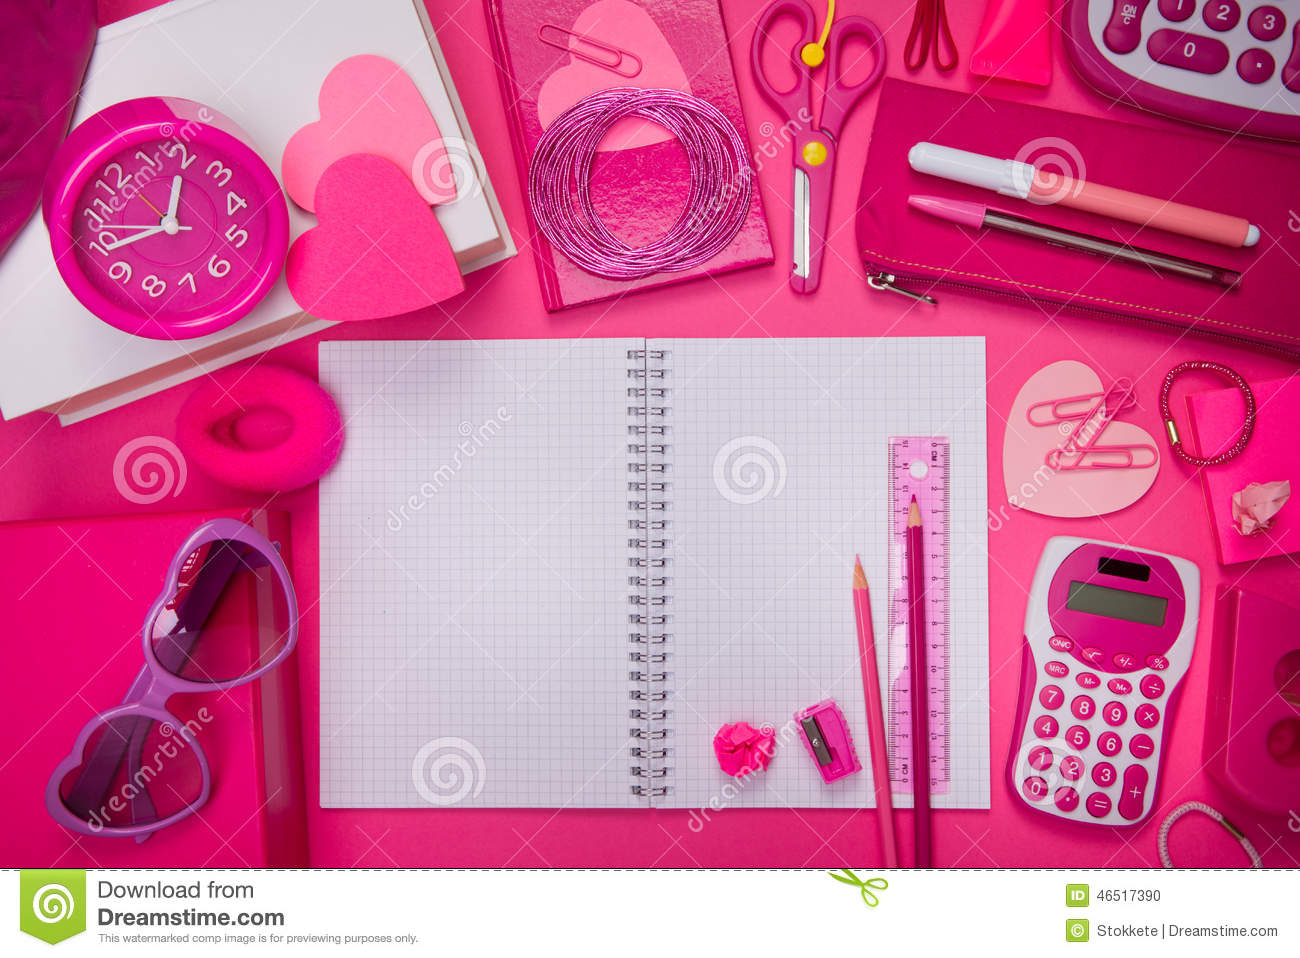 Pink Heart Wallpaper Hd Girly Pink Desktop And Stationery Stock Photo Image